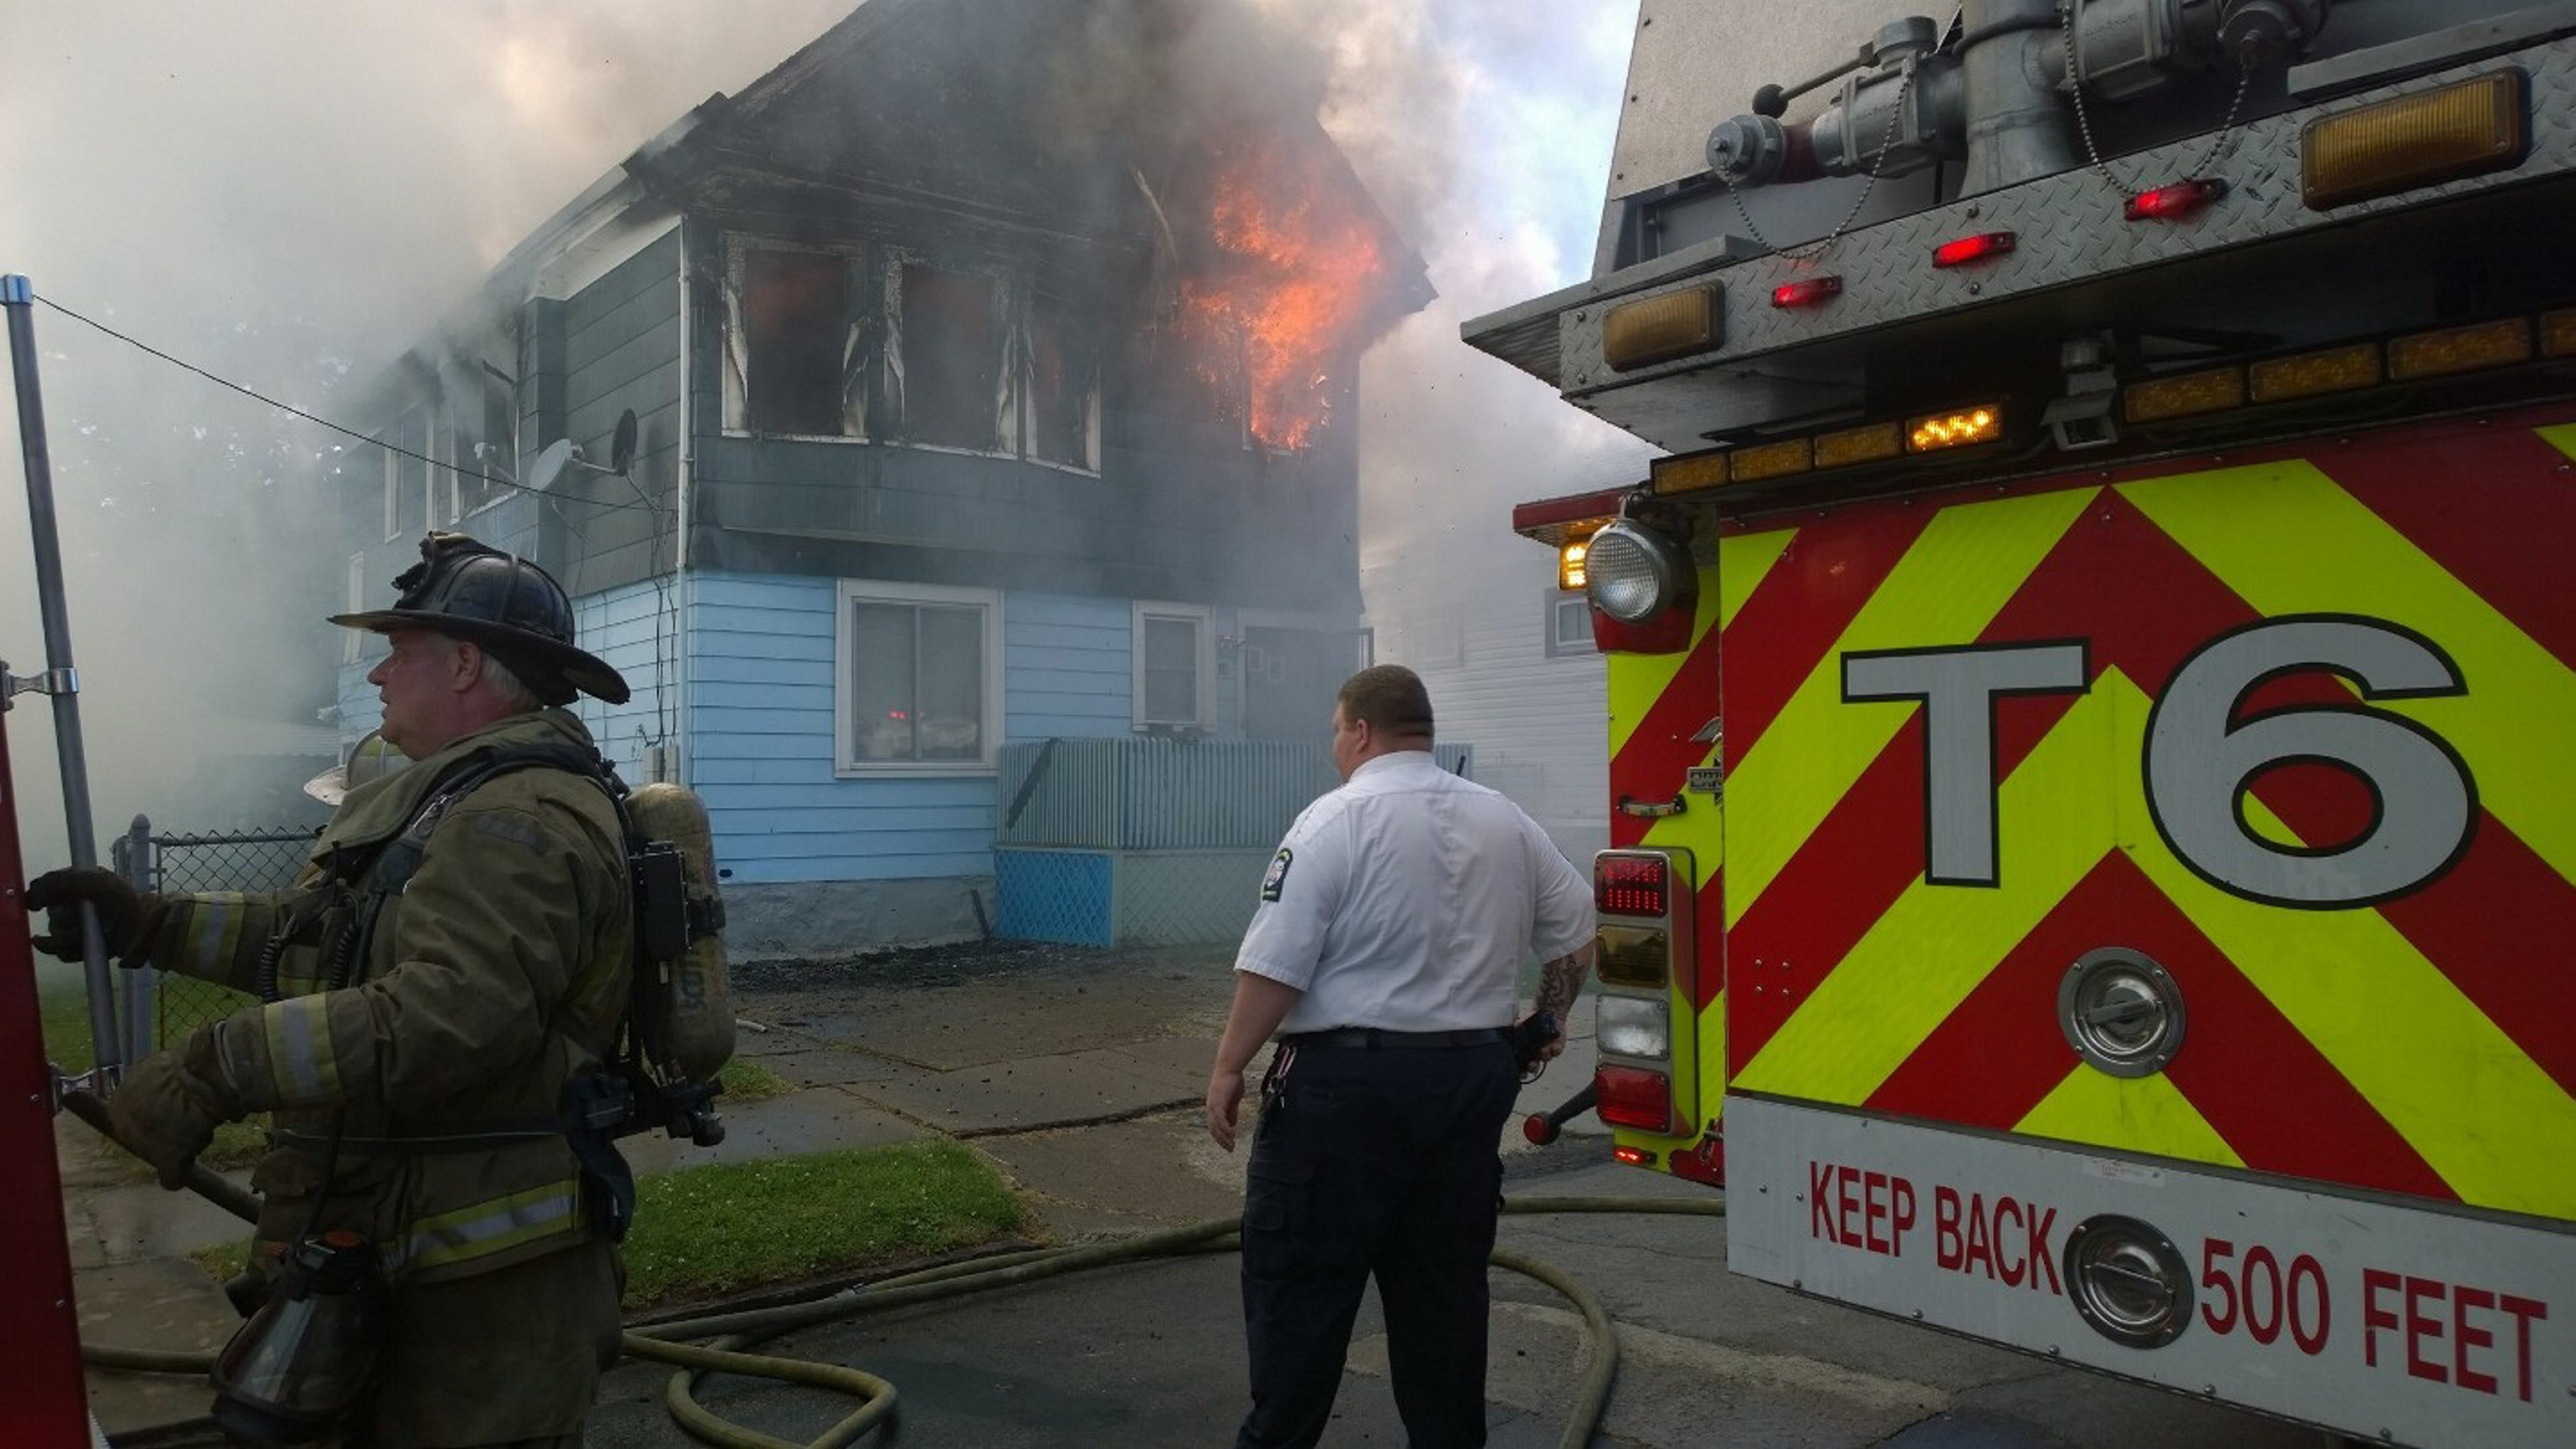 Firefighters and rescue personnel respond to the blaze at 18 Regina Place, where man died and son was saved.